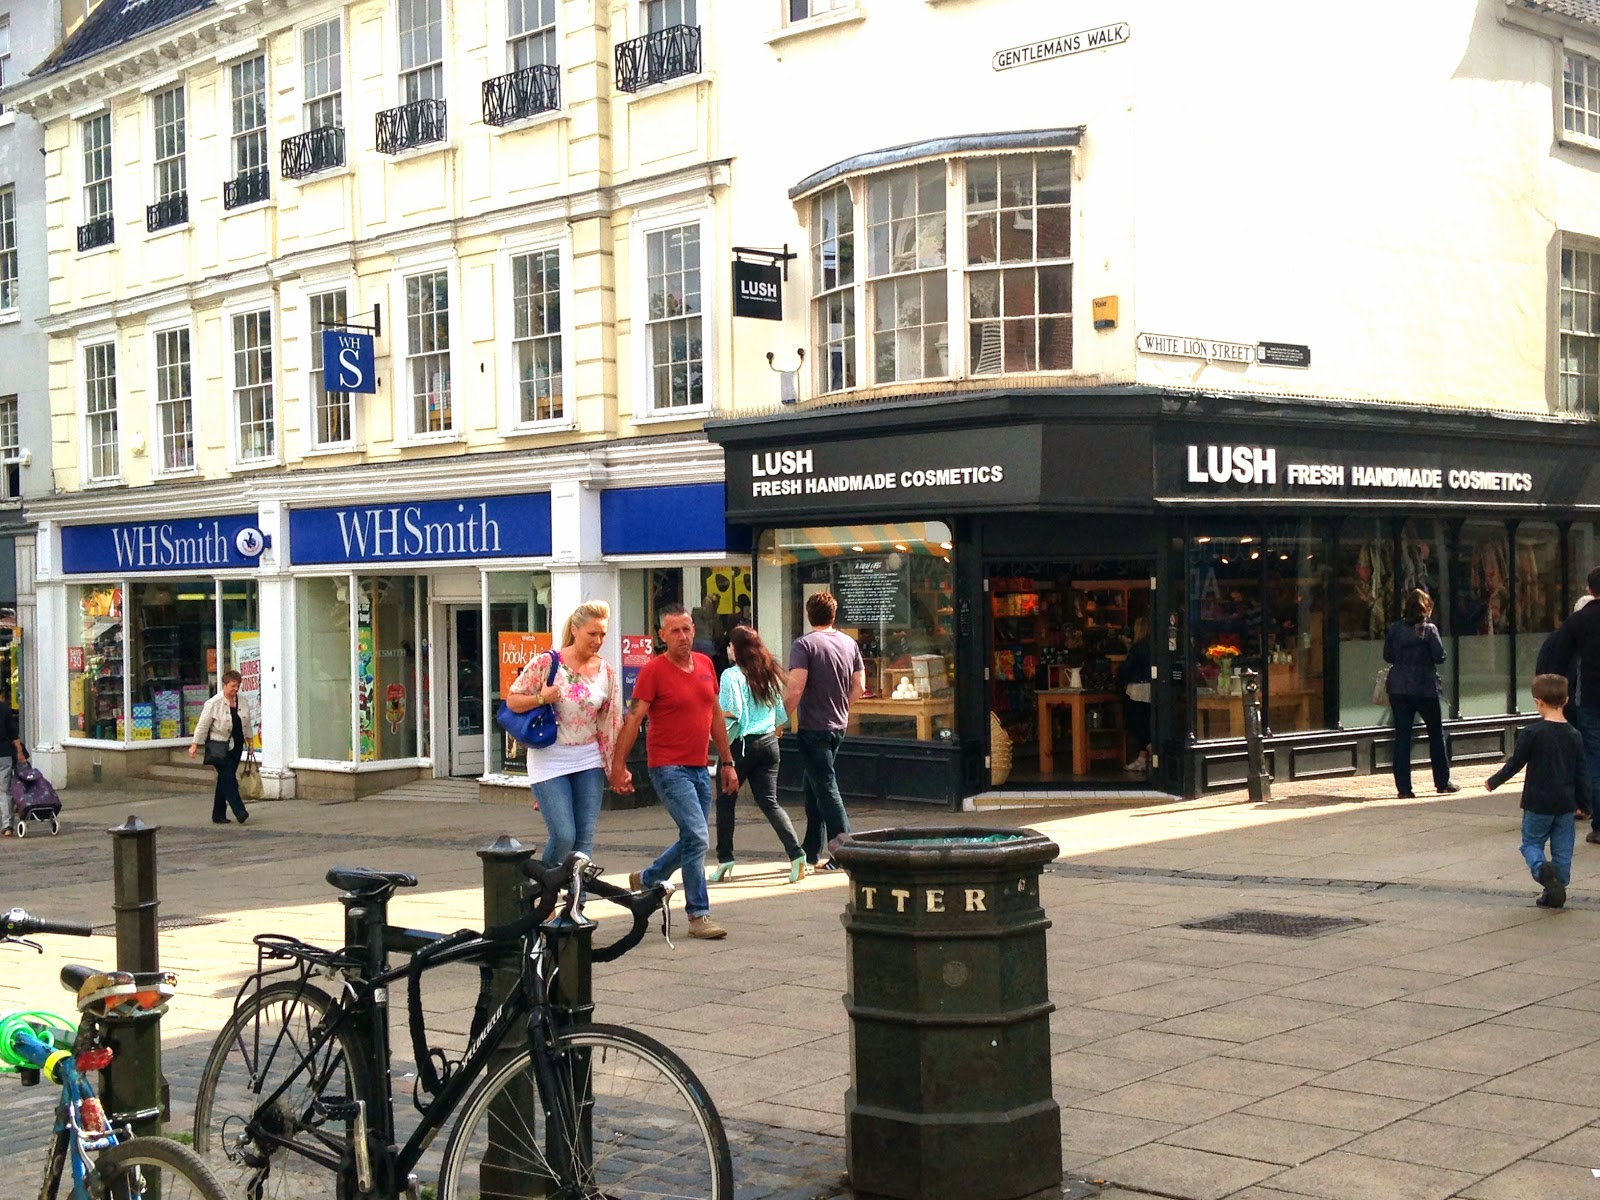 A picture of Lush Norwich